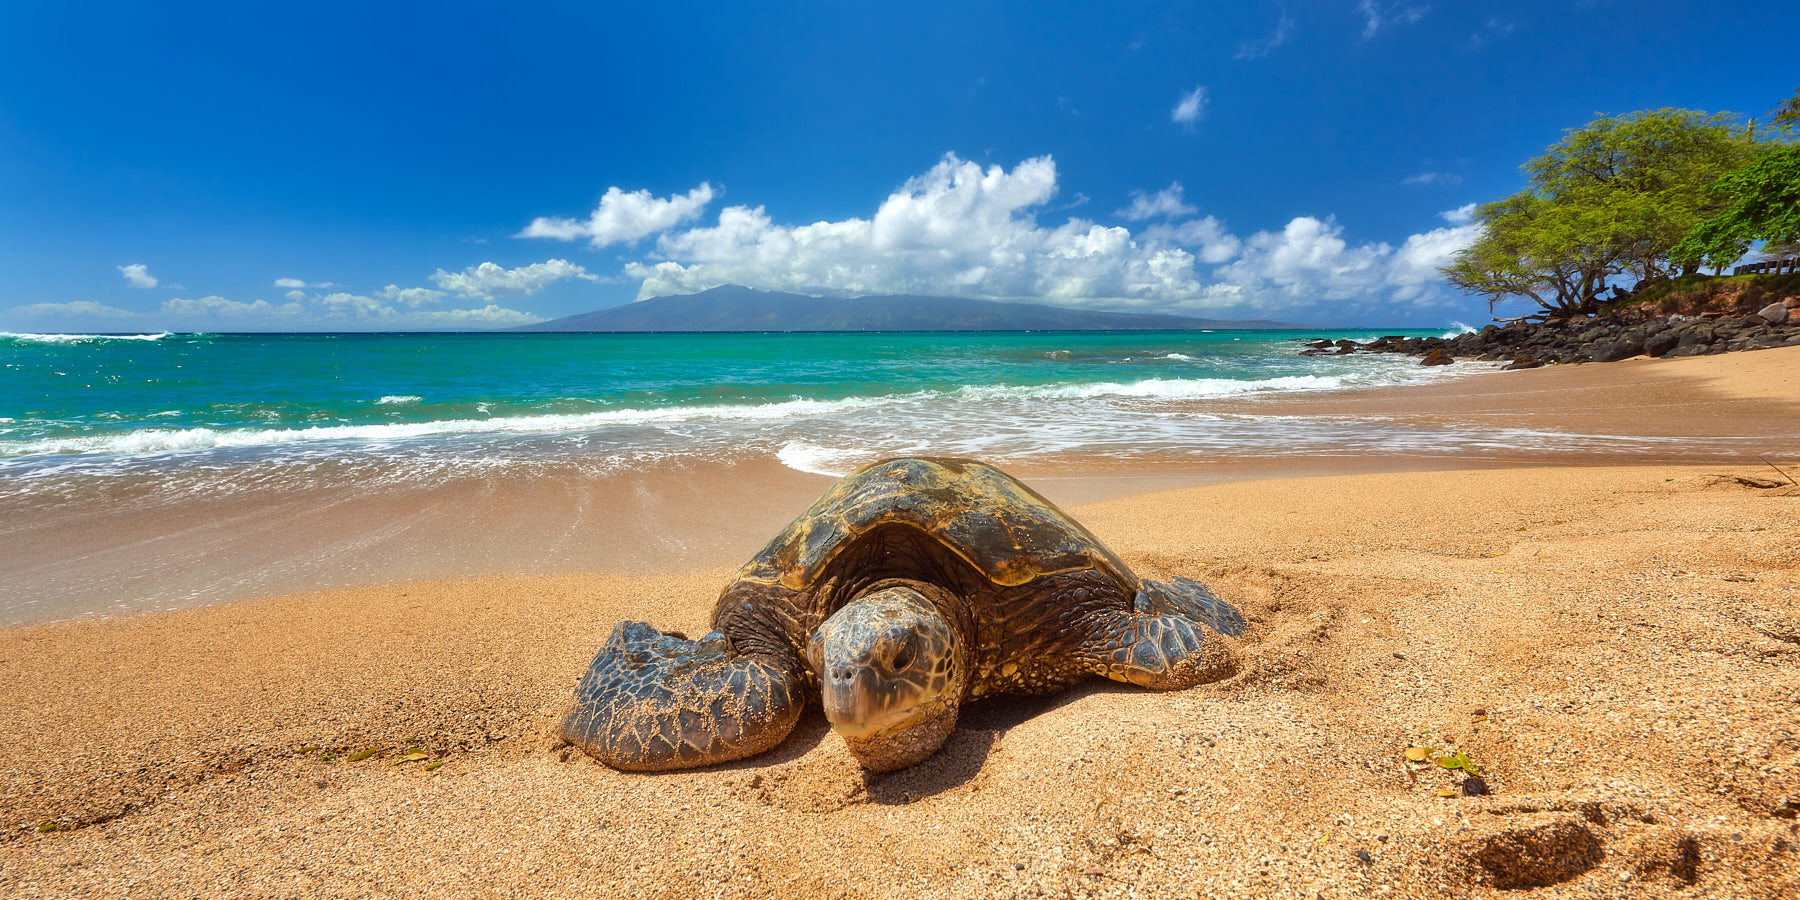 a lone hawaiian sea turtle relaxing on the beach during the day with the island of Lanai in the background